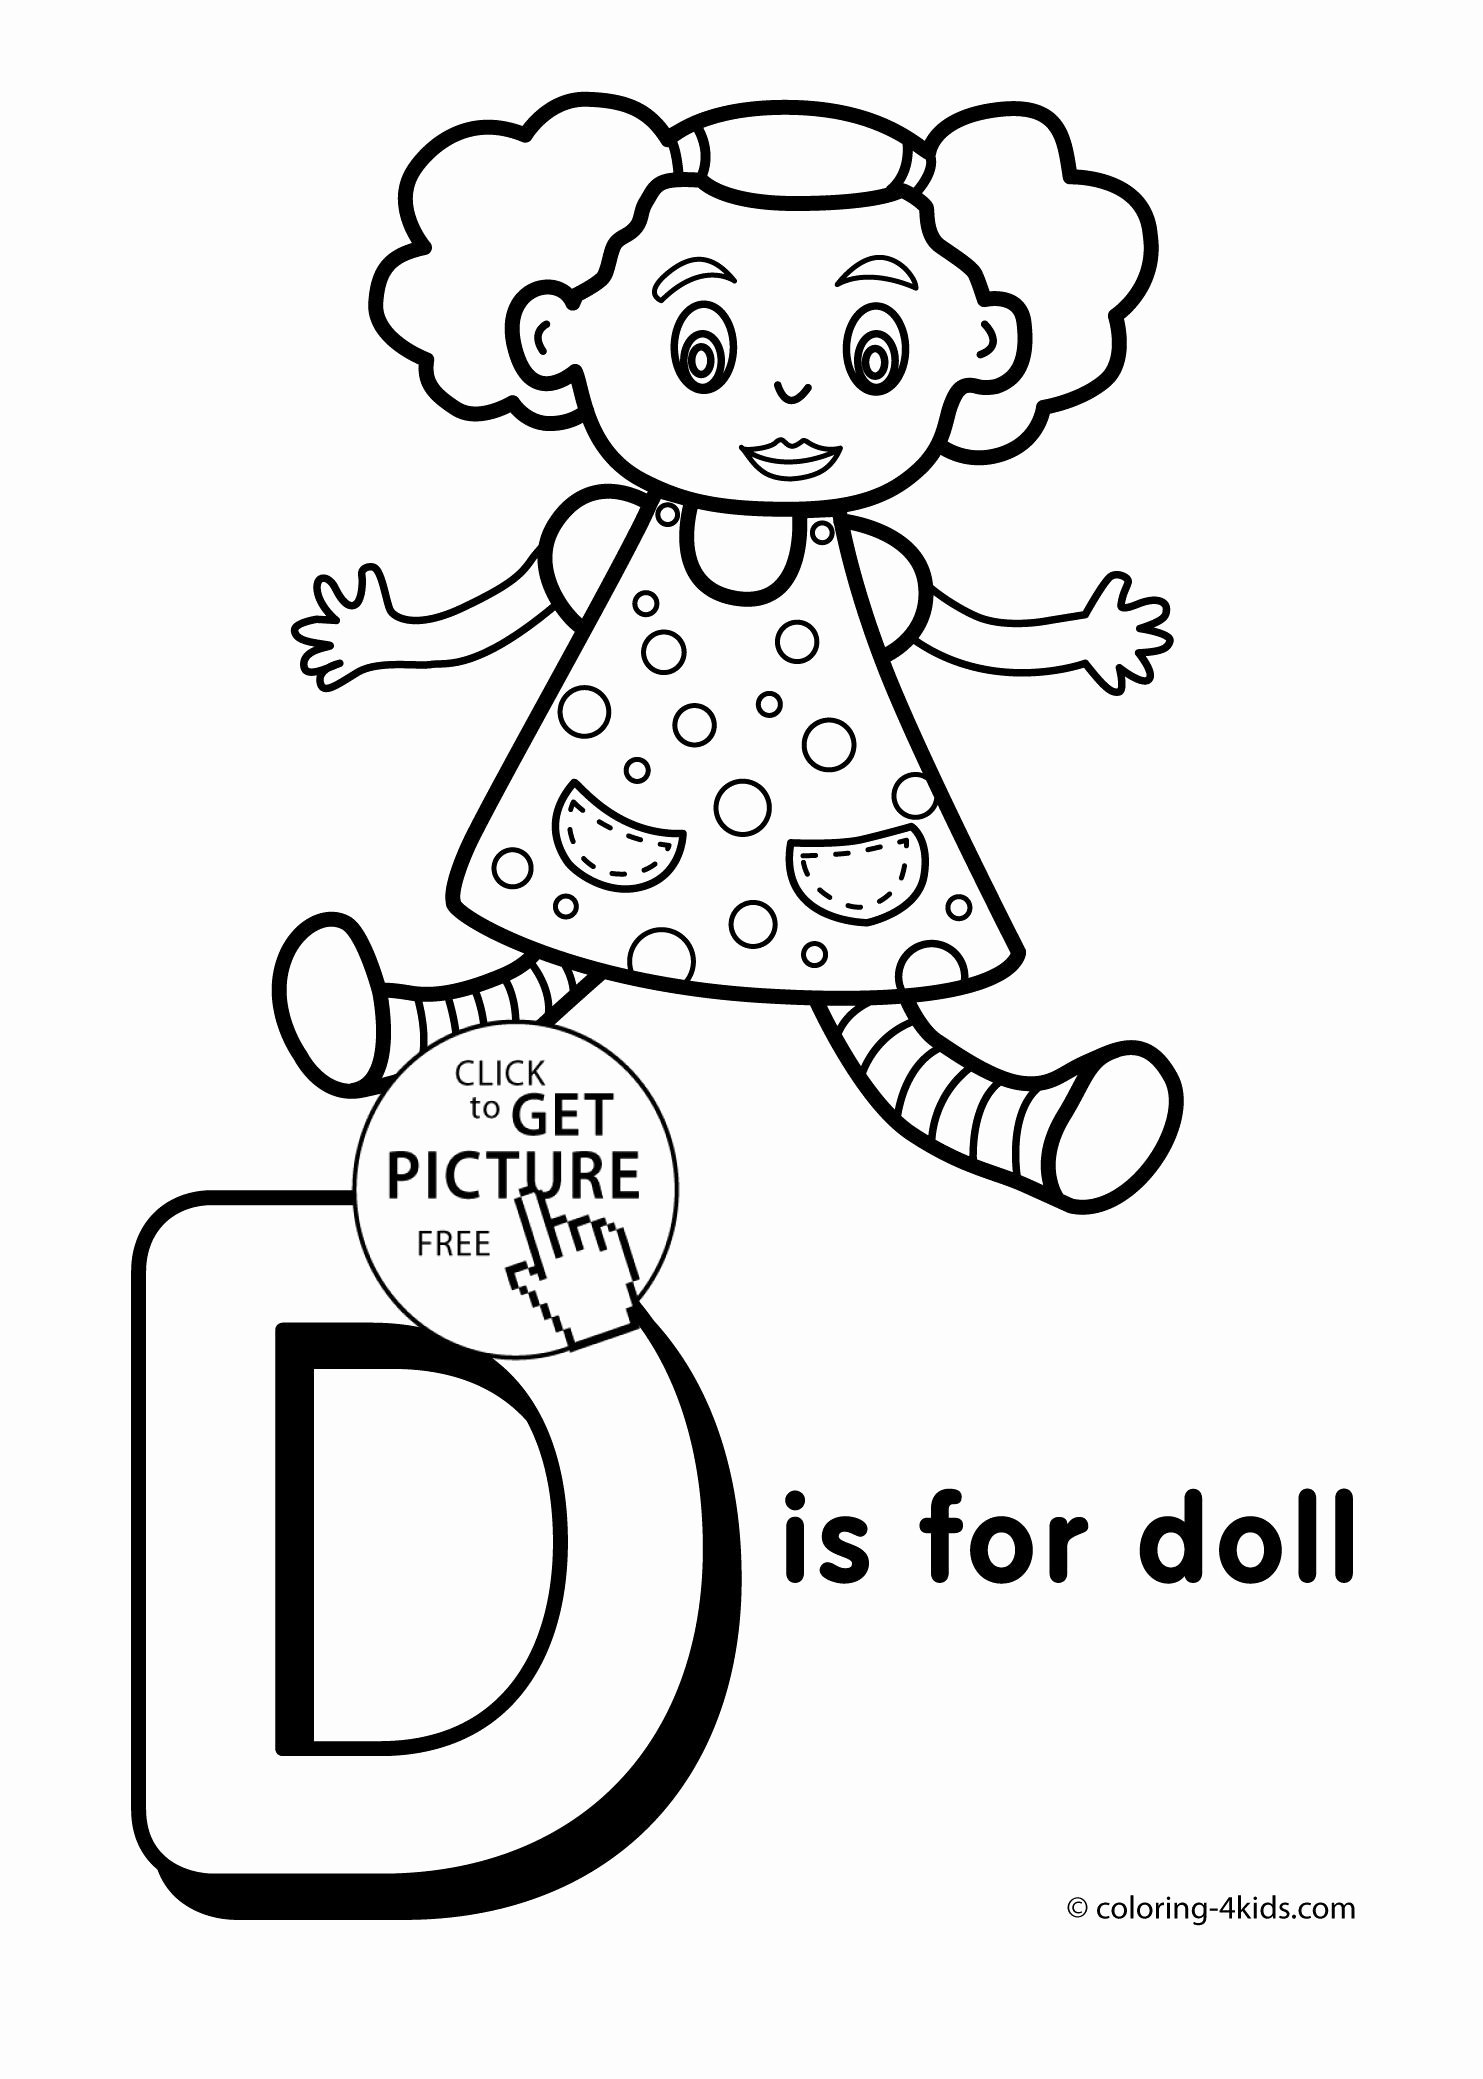 Dltk Worksheets for Preschoolers Unique Dltk Printables Letters Dltk Printable Letters Free